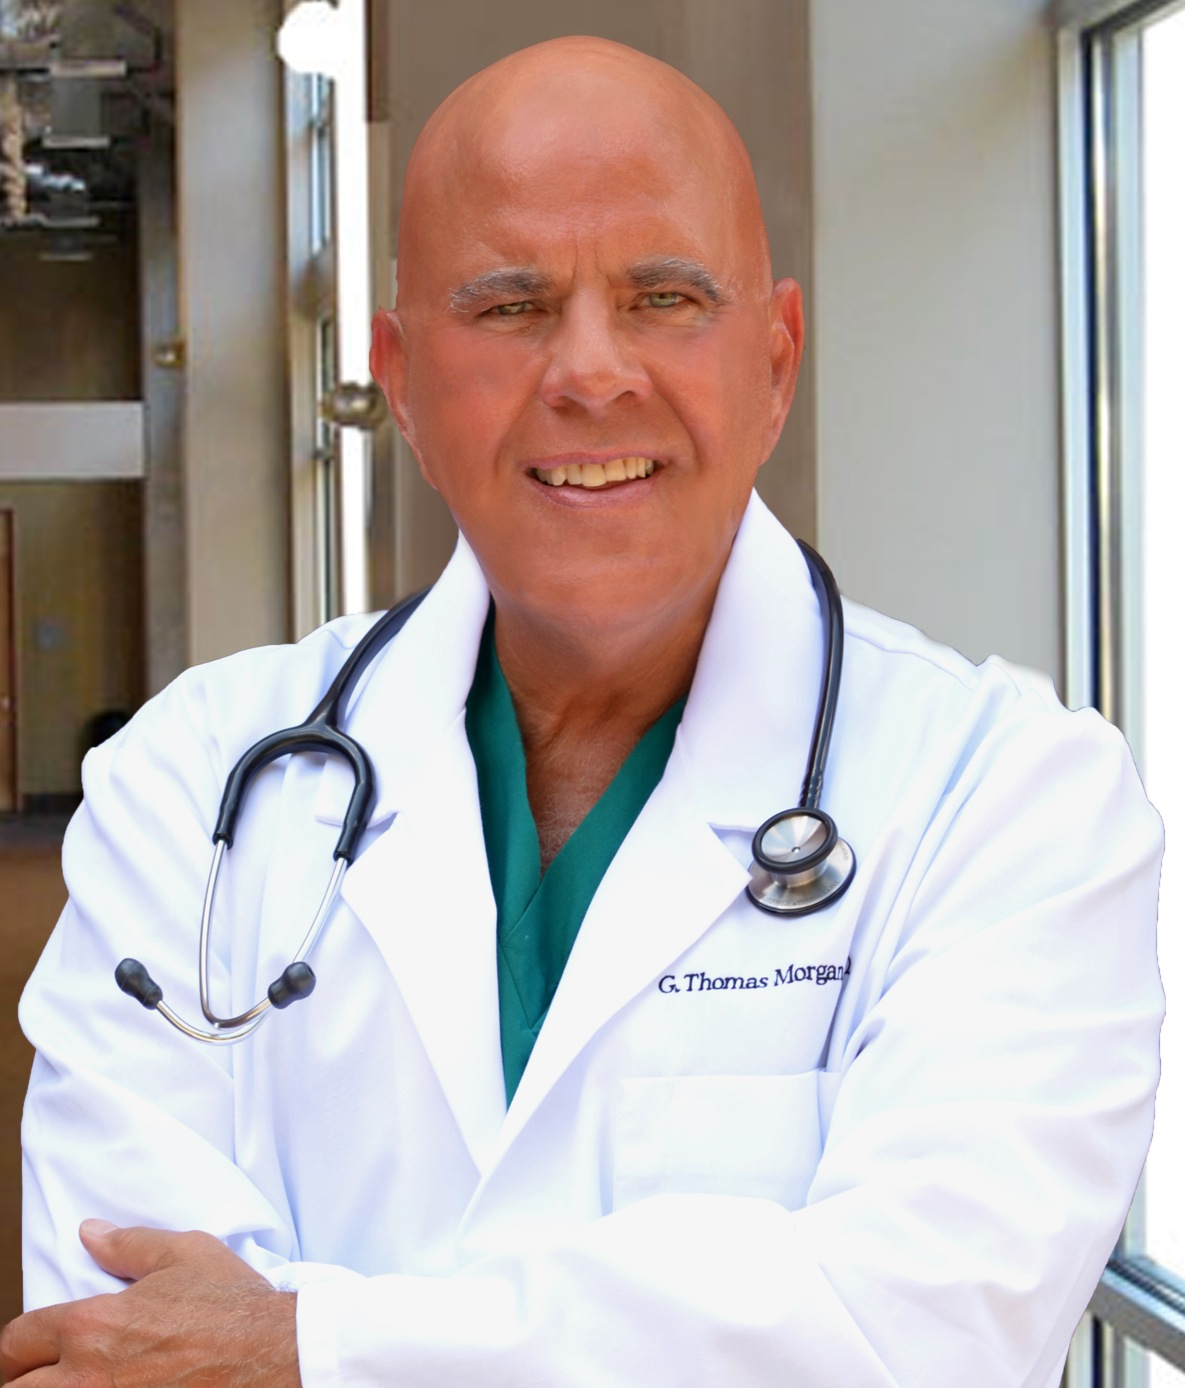 George T Morgan, MD